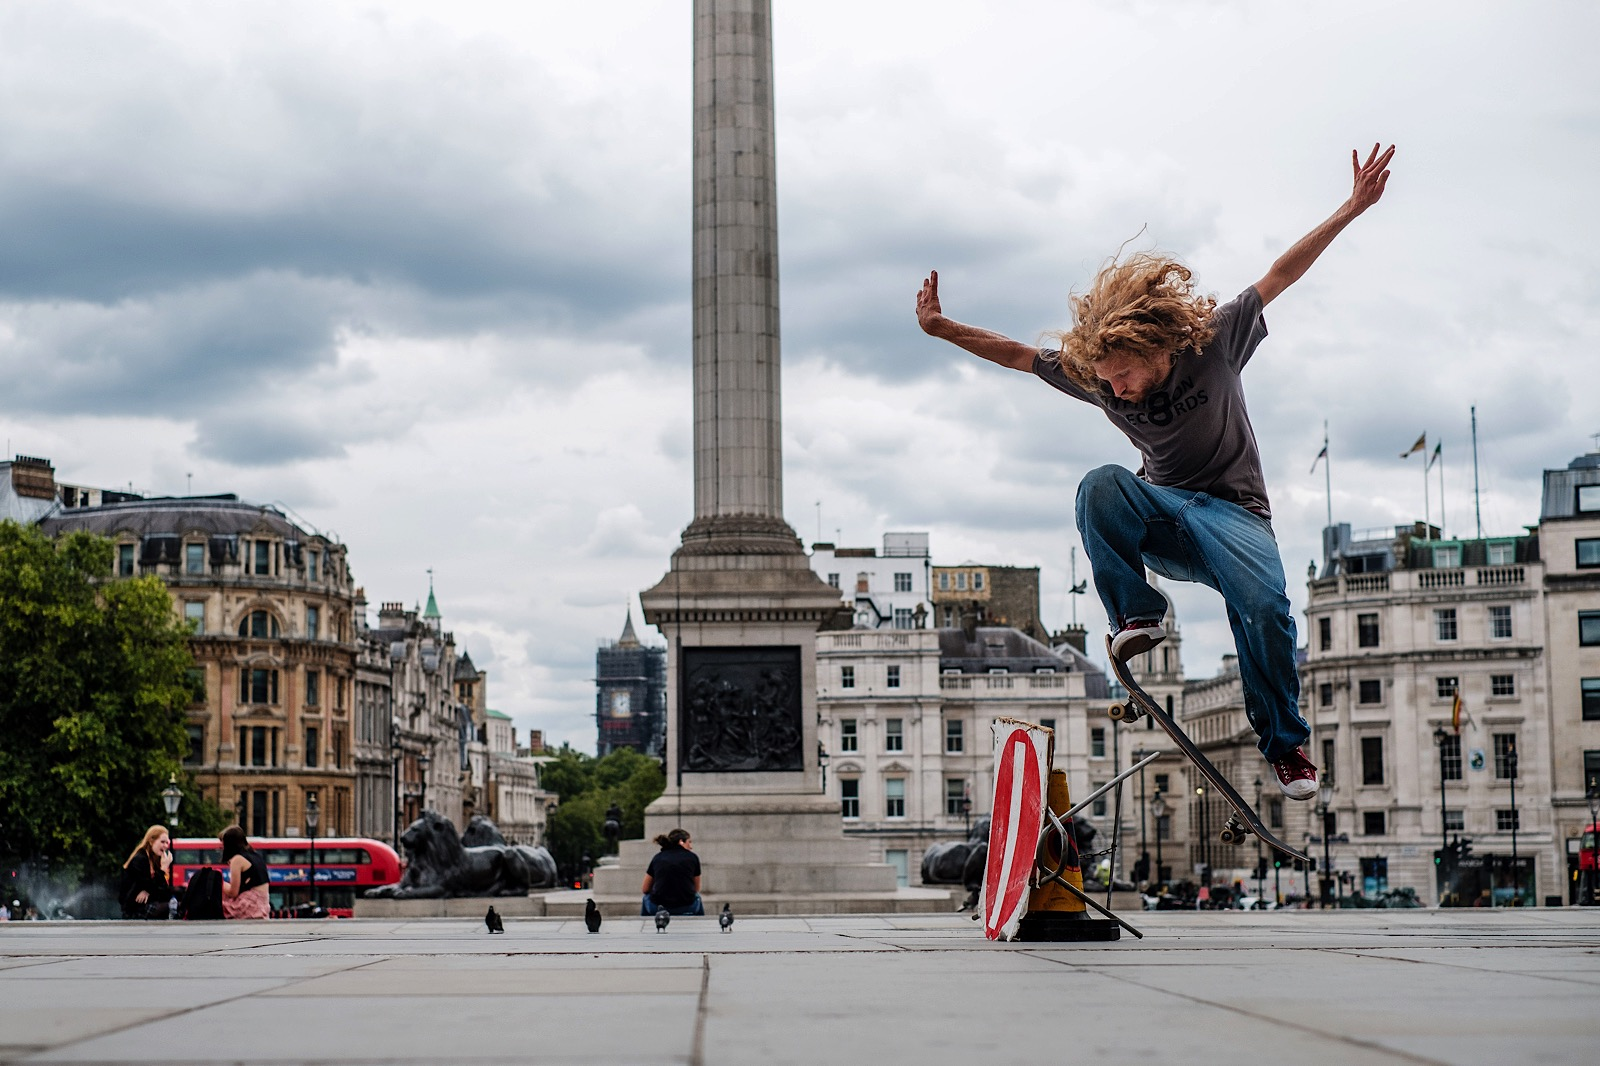 Street Photography portrait of skateboarder at Trafalger Square mid trick